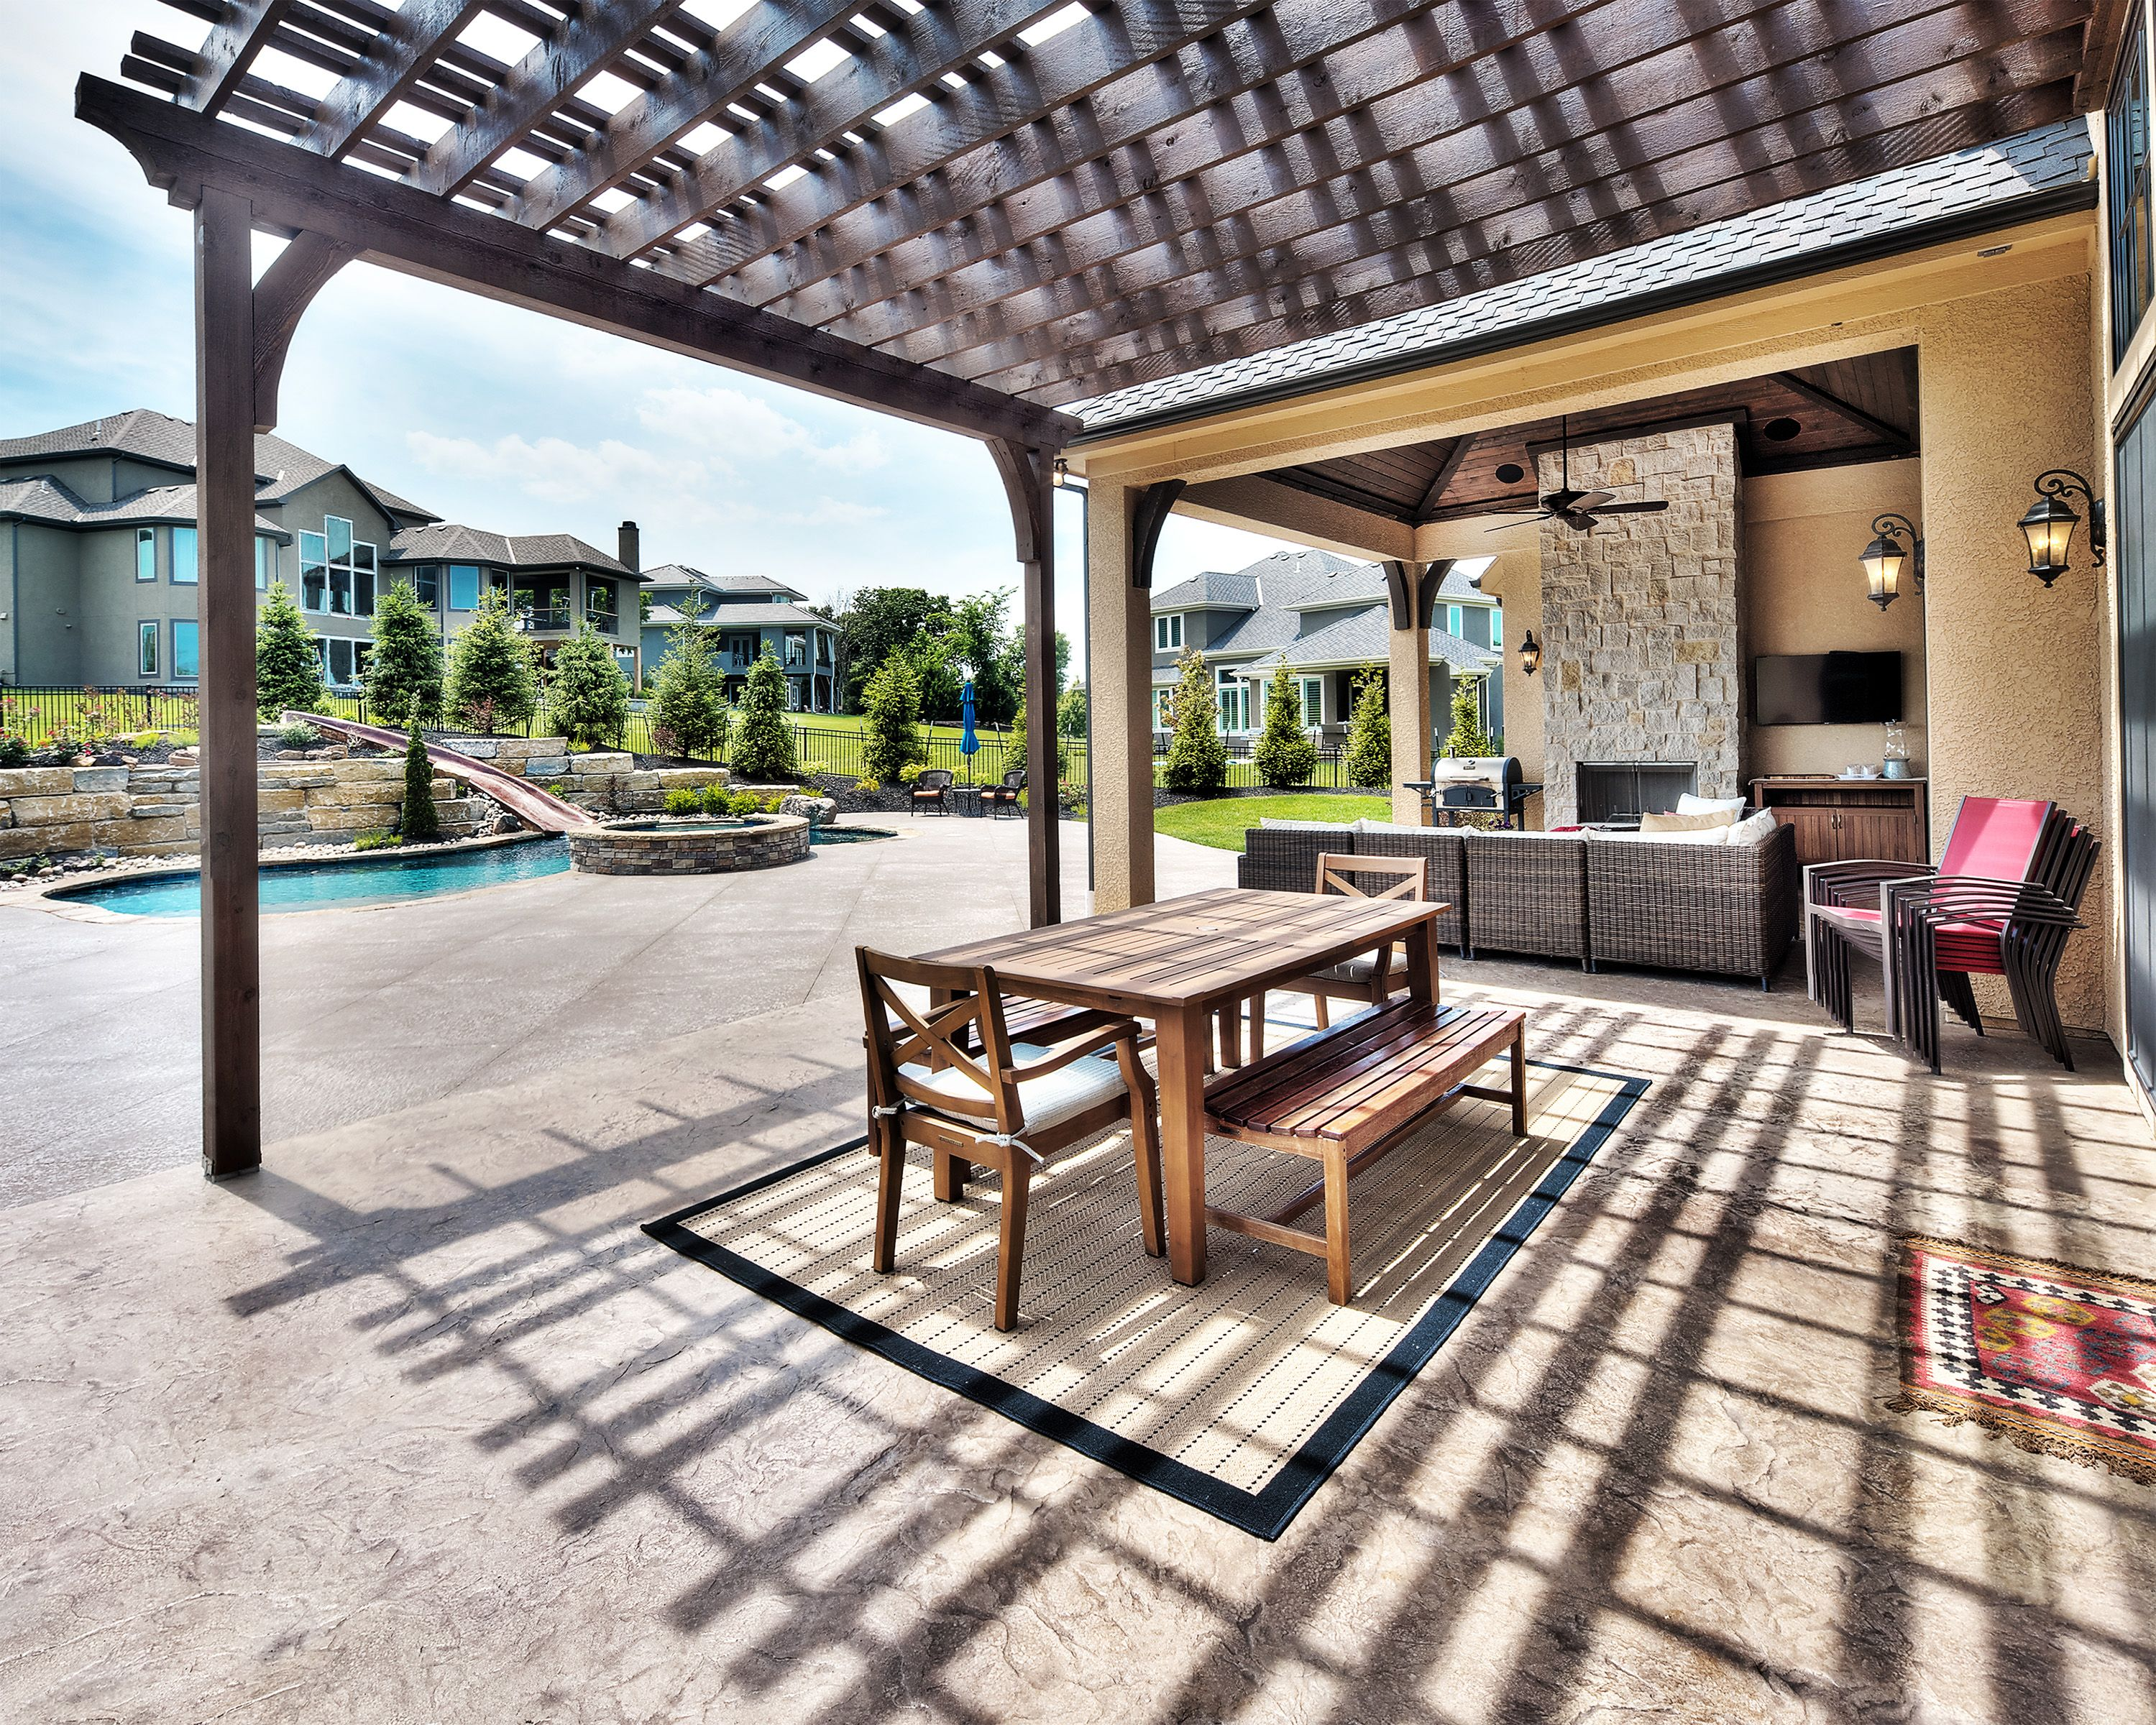 Genial Starr Homes Patio And Pool